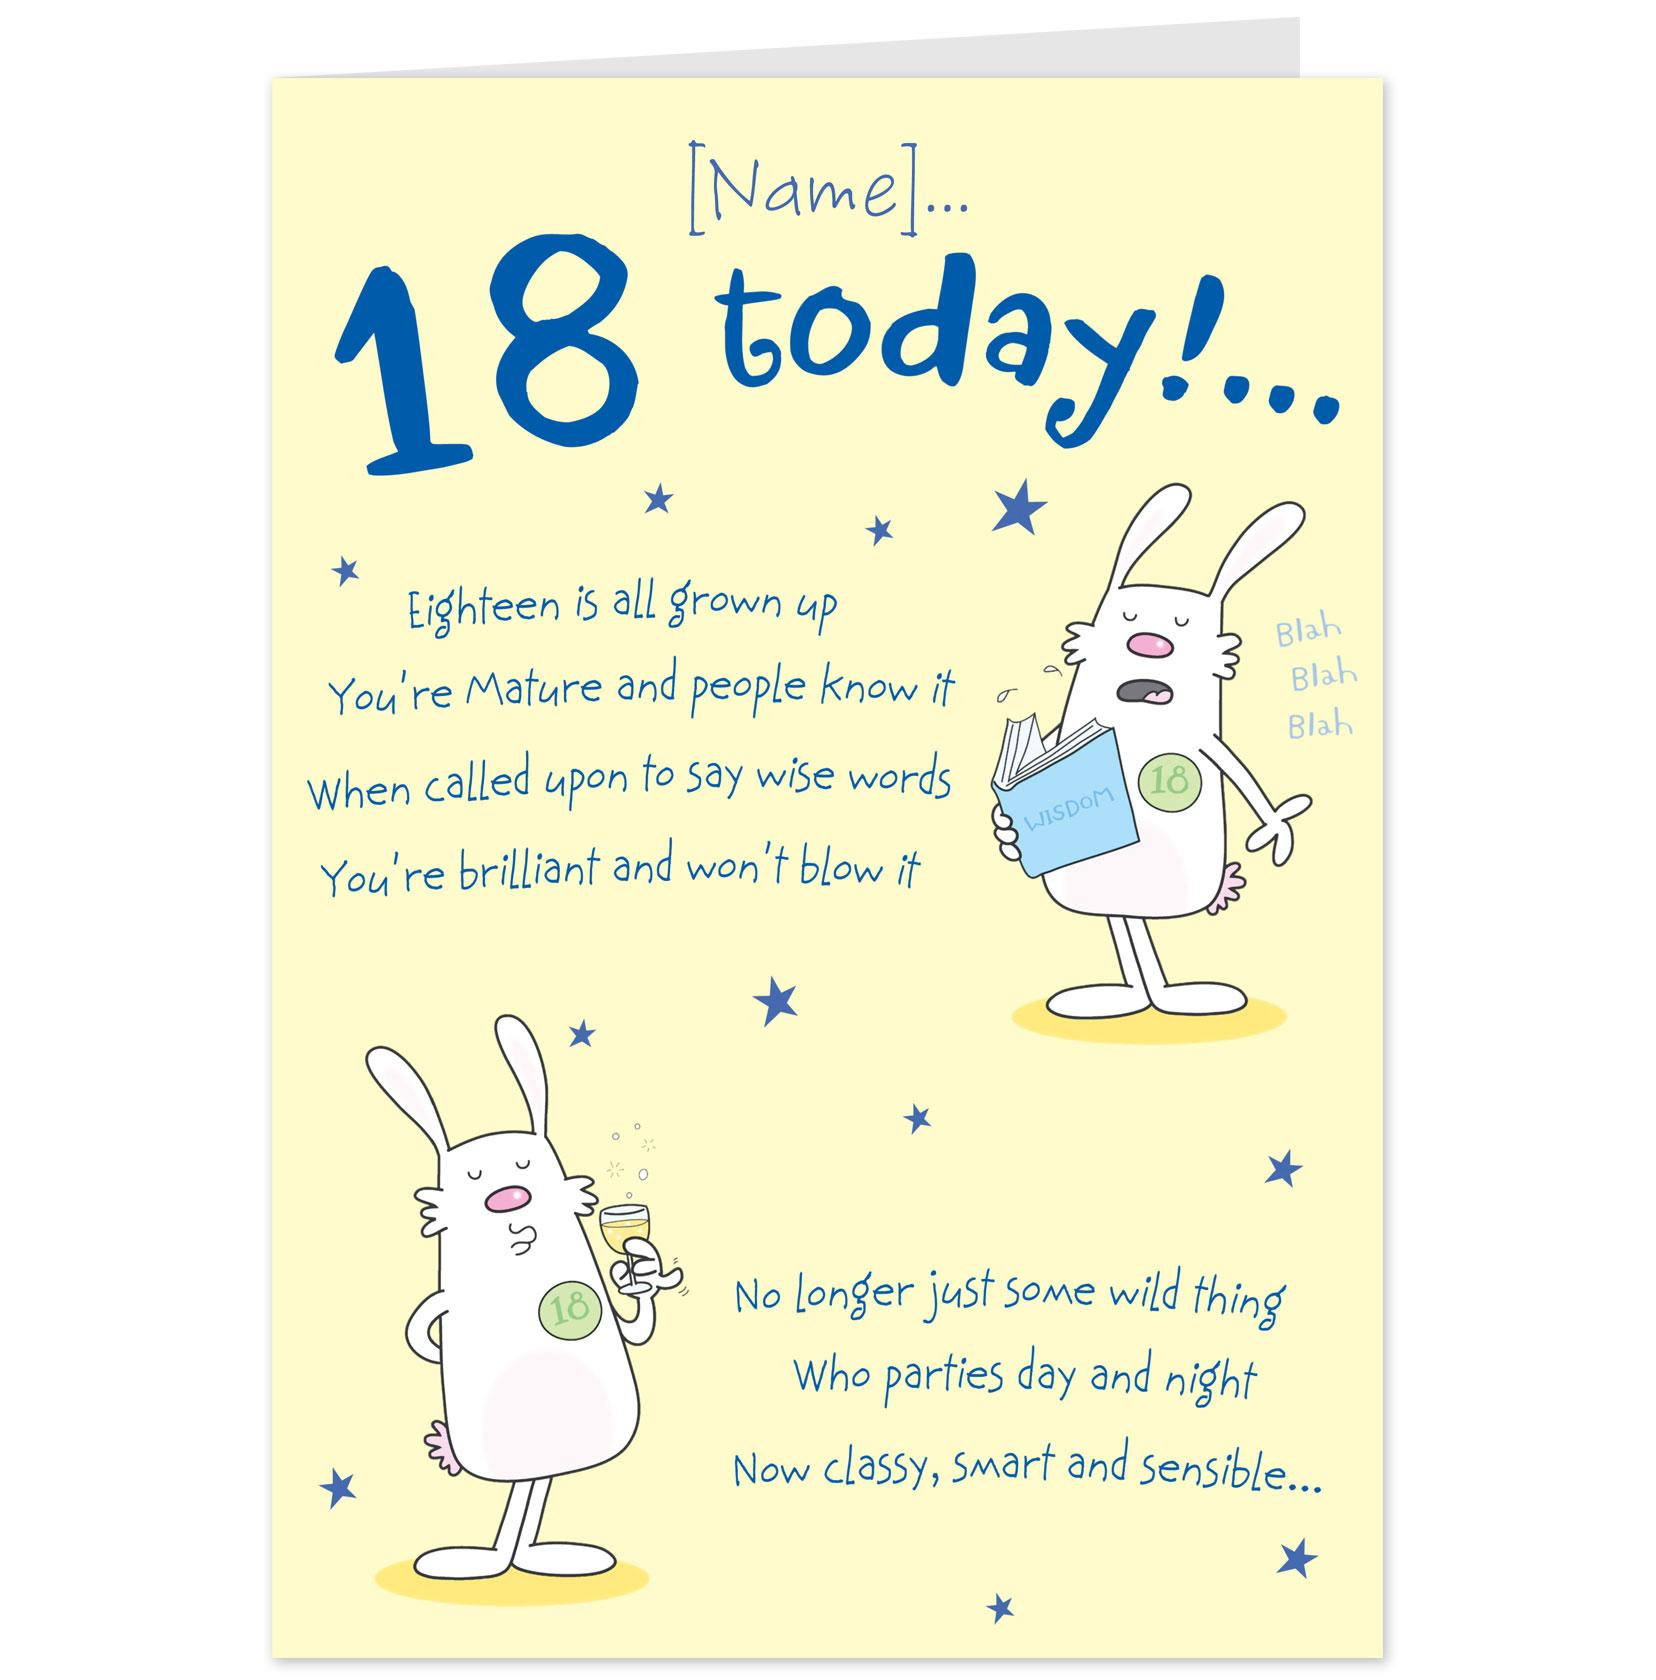 Funny Quotes For Her Birthday Quotesgram: 18th Birthday Quotes Funny. QuotesGram